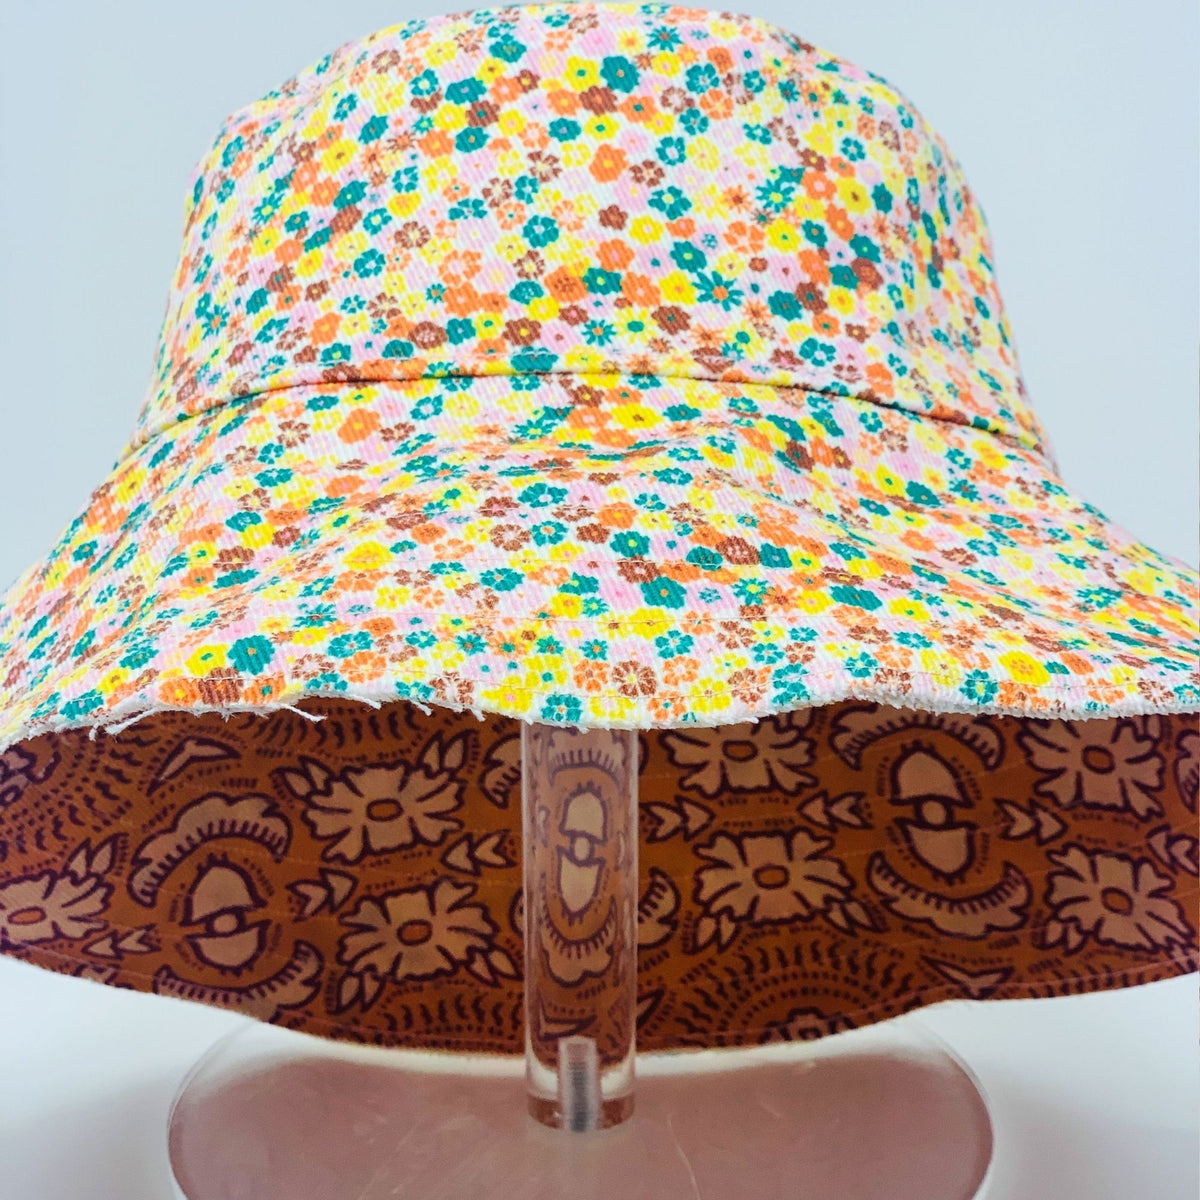 Riviera 1970 Bucket Hat - Carly